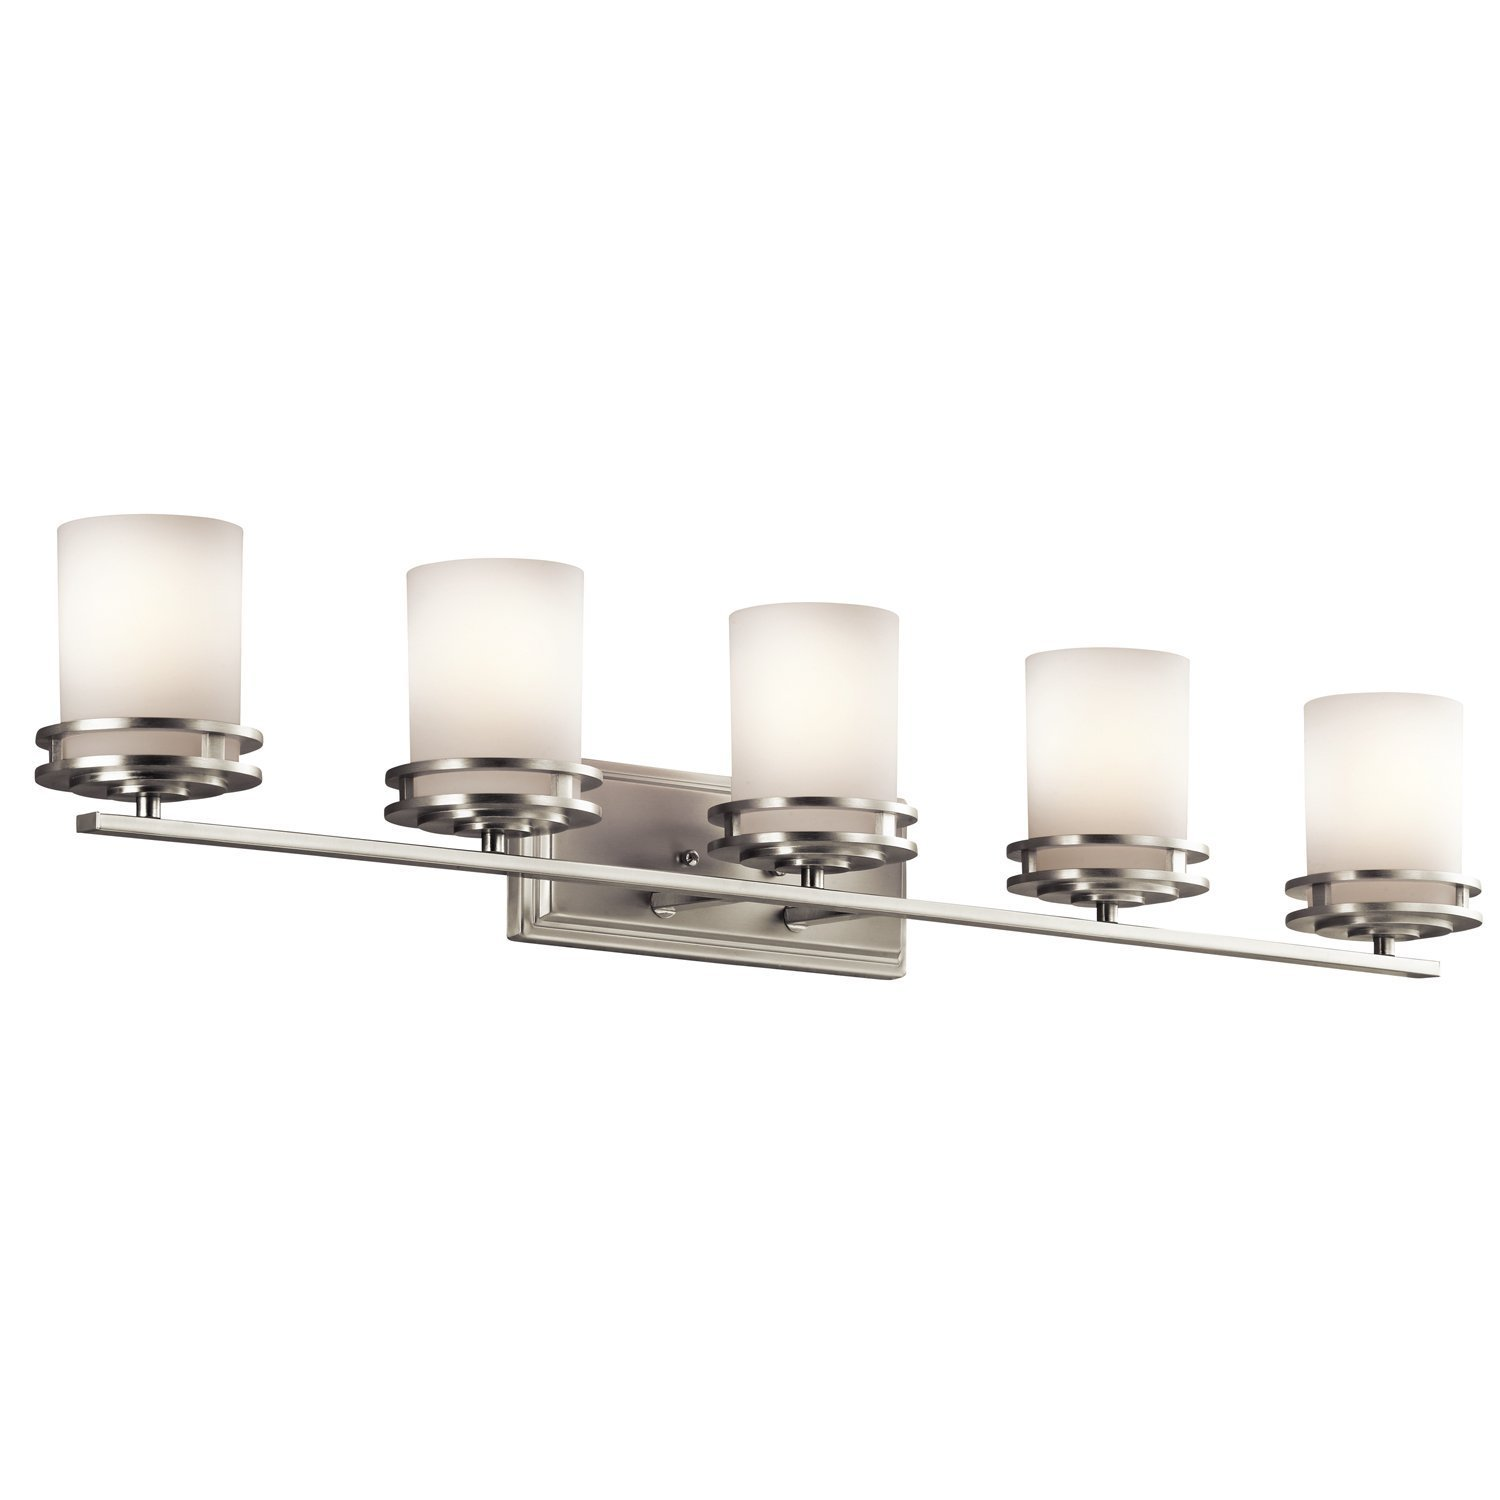 Kichler 5085ni hendrik glass wall vanity lighting 5 light brushed nickel amazon com